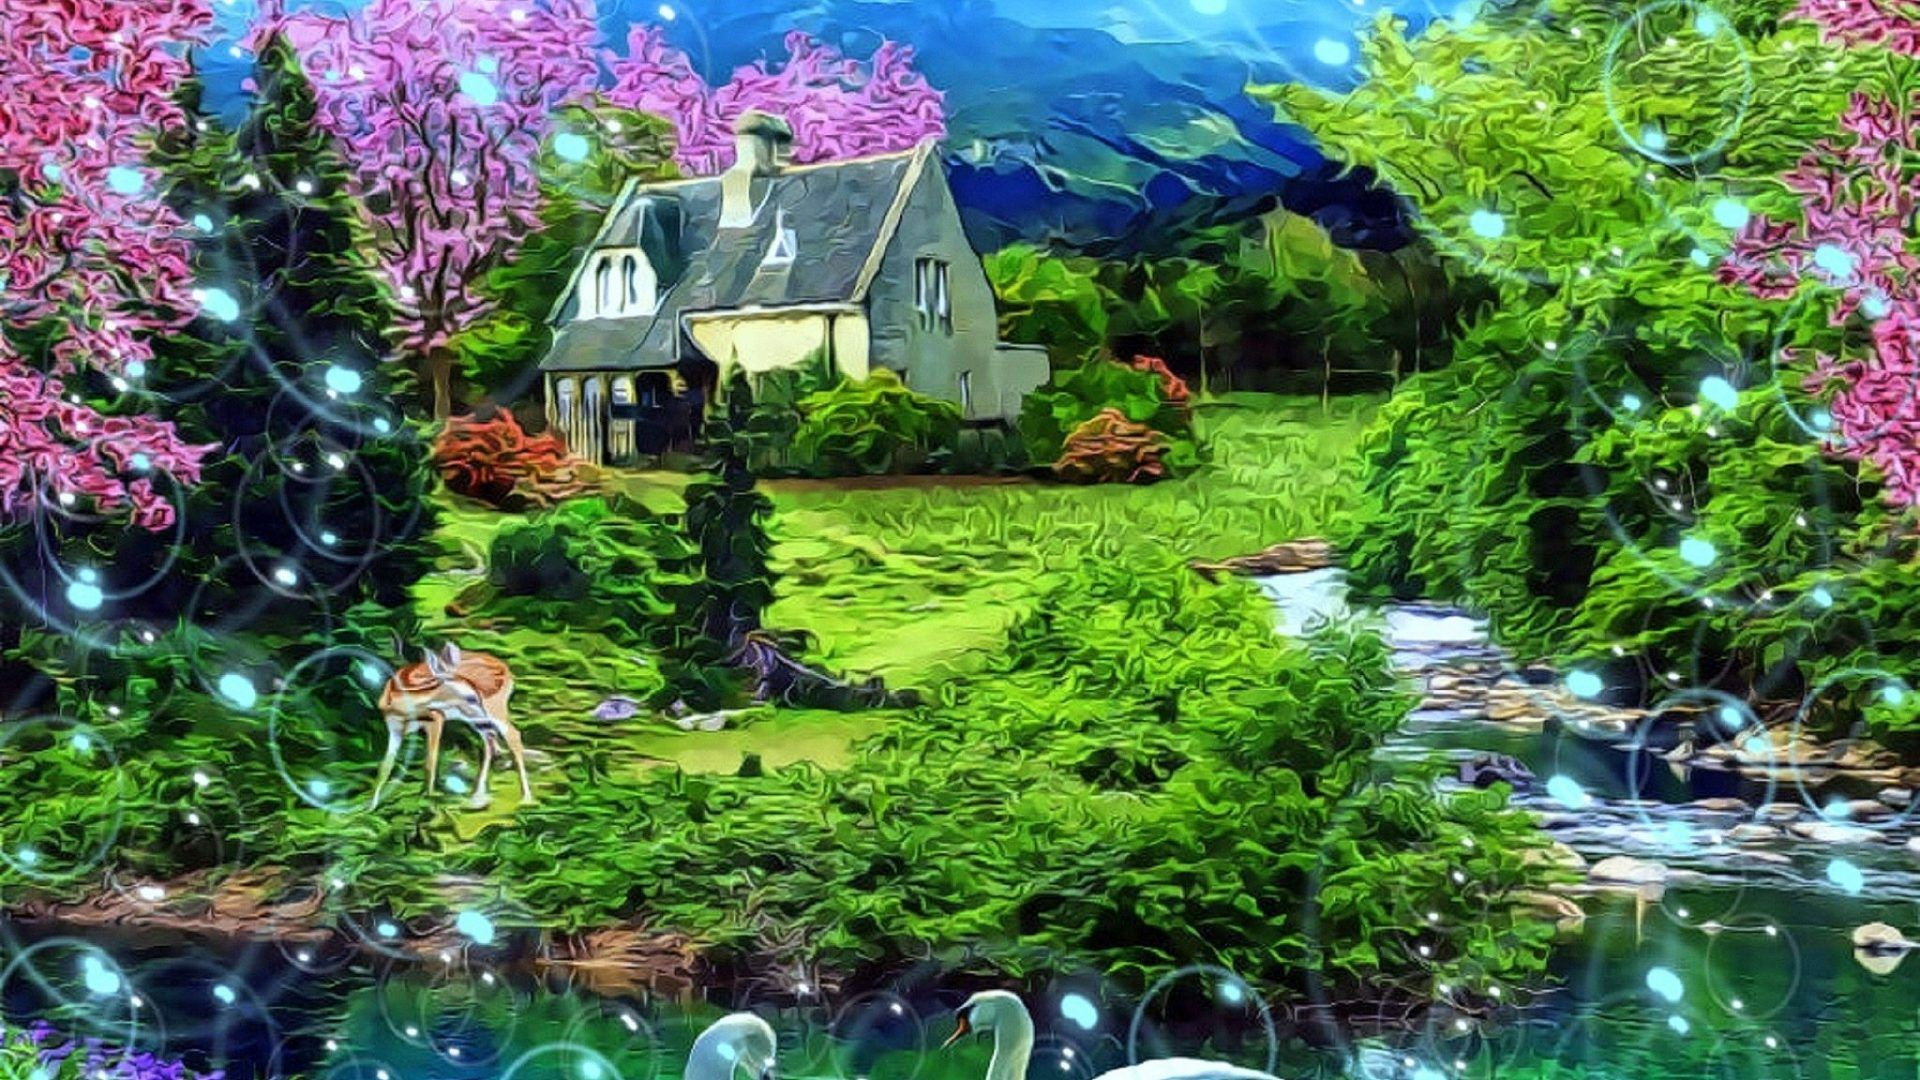 Paradise Spring Paintings Deer Beloved Valentines Animals Pond Plants Love Seasons Cottages Flowers Gardens Parks Attractions Dreams Sky Swans Drawings Creative Pre Nature Trees Architecture Landscapes Gardening Scenery Lovely Wearther Picture Gallery